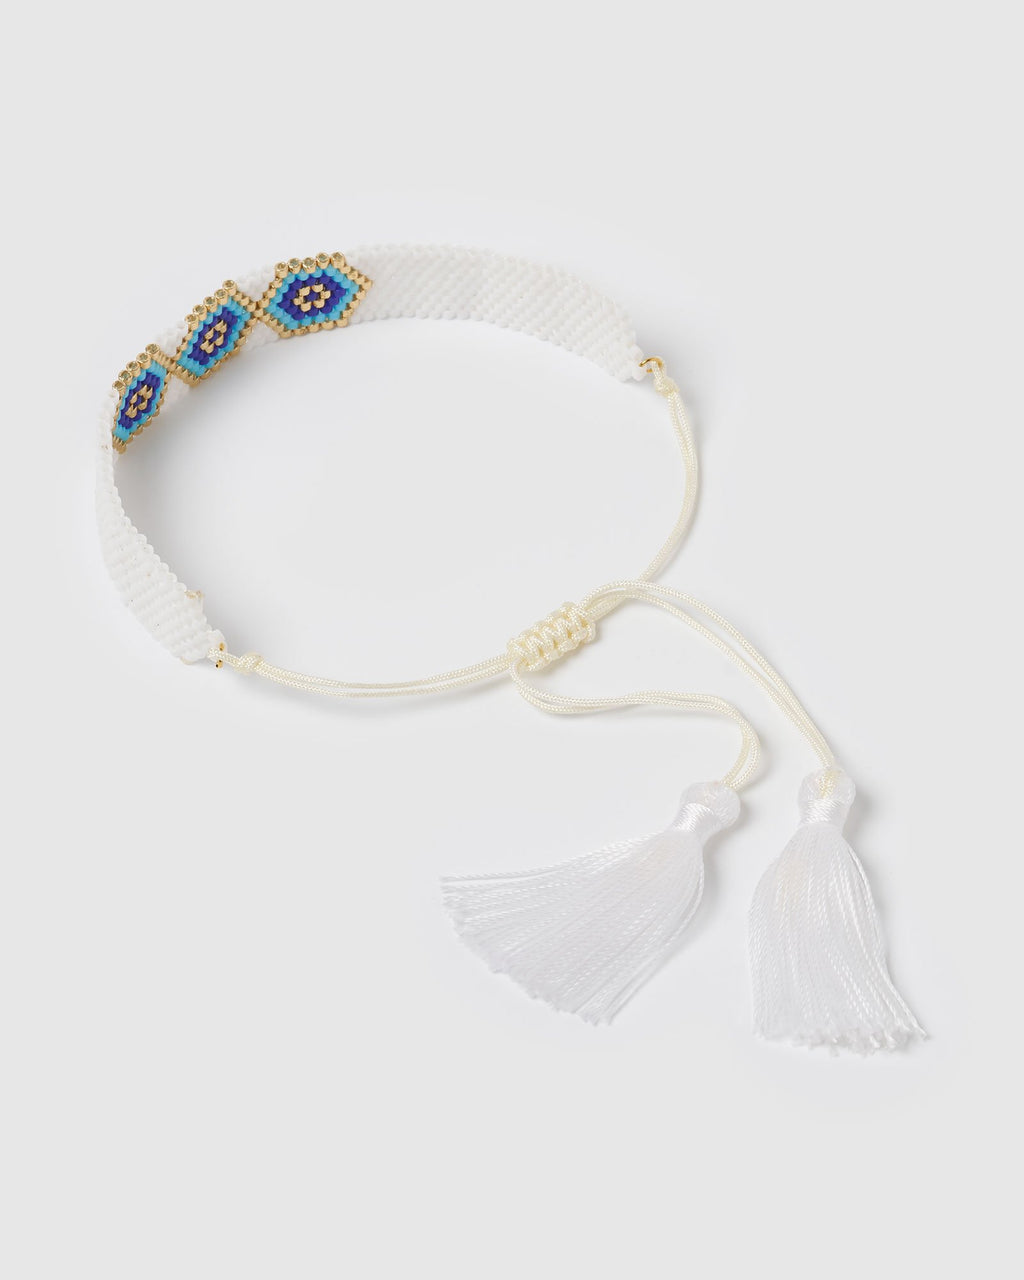 Miz Casa & Co Amara Bracelet White Blue